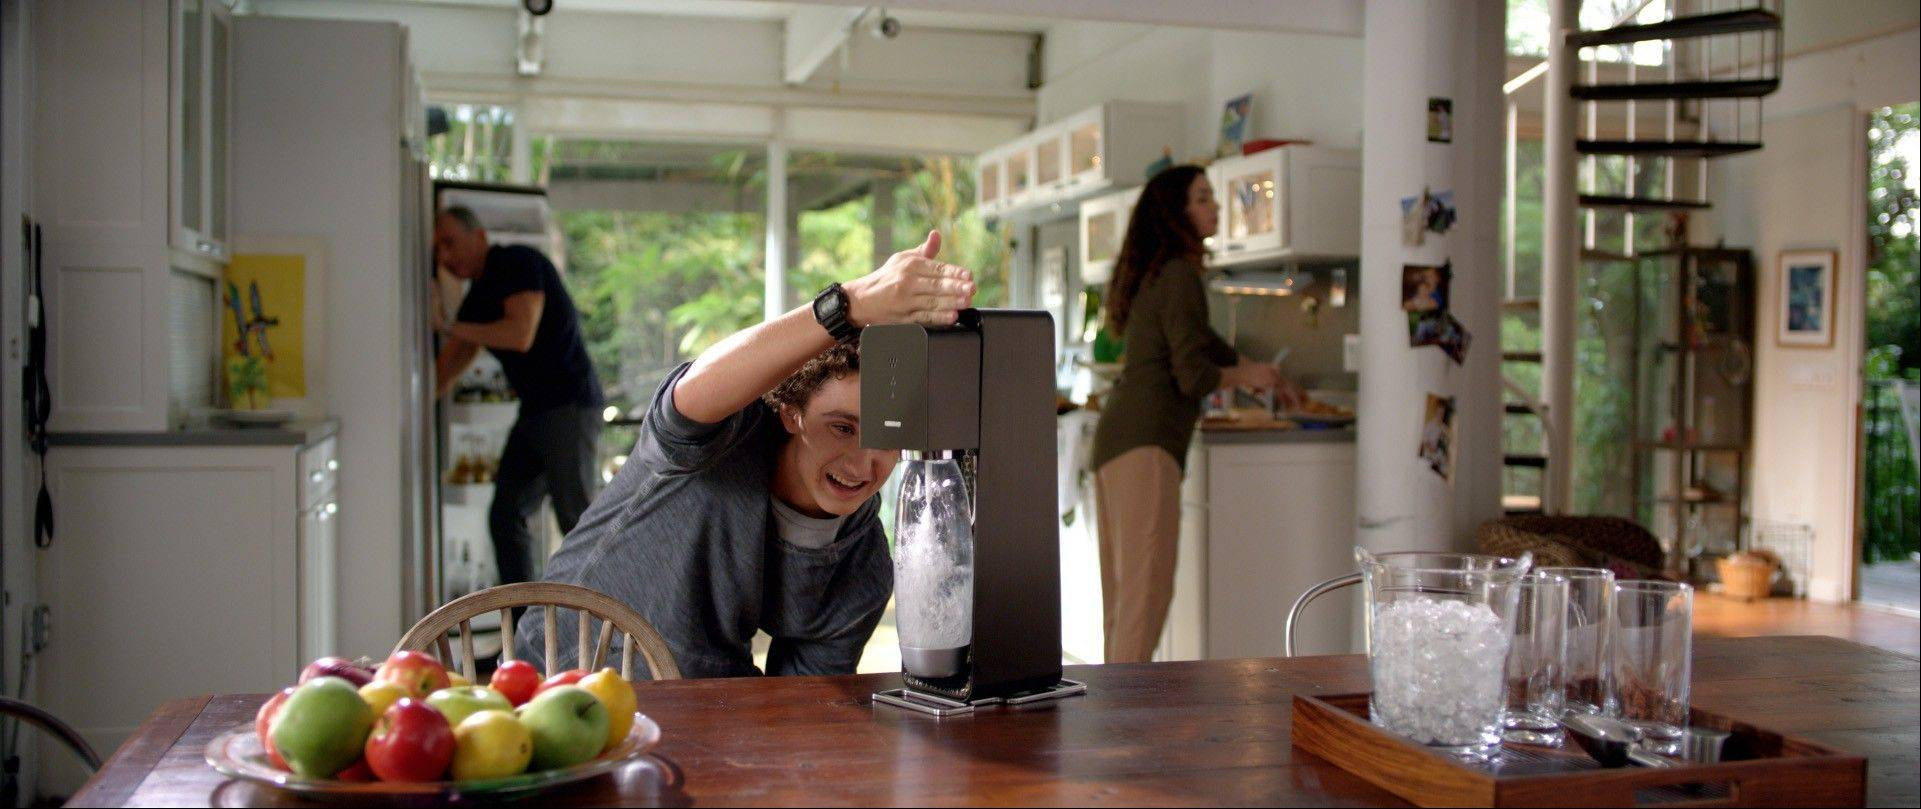 A provided by SodaStream shows the company's Super Bowl advertisement.